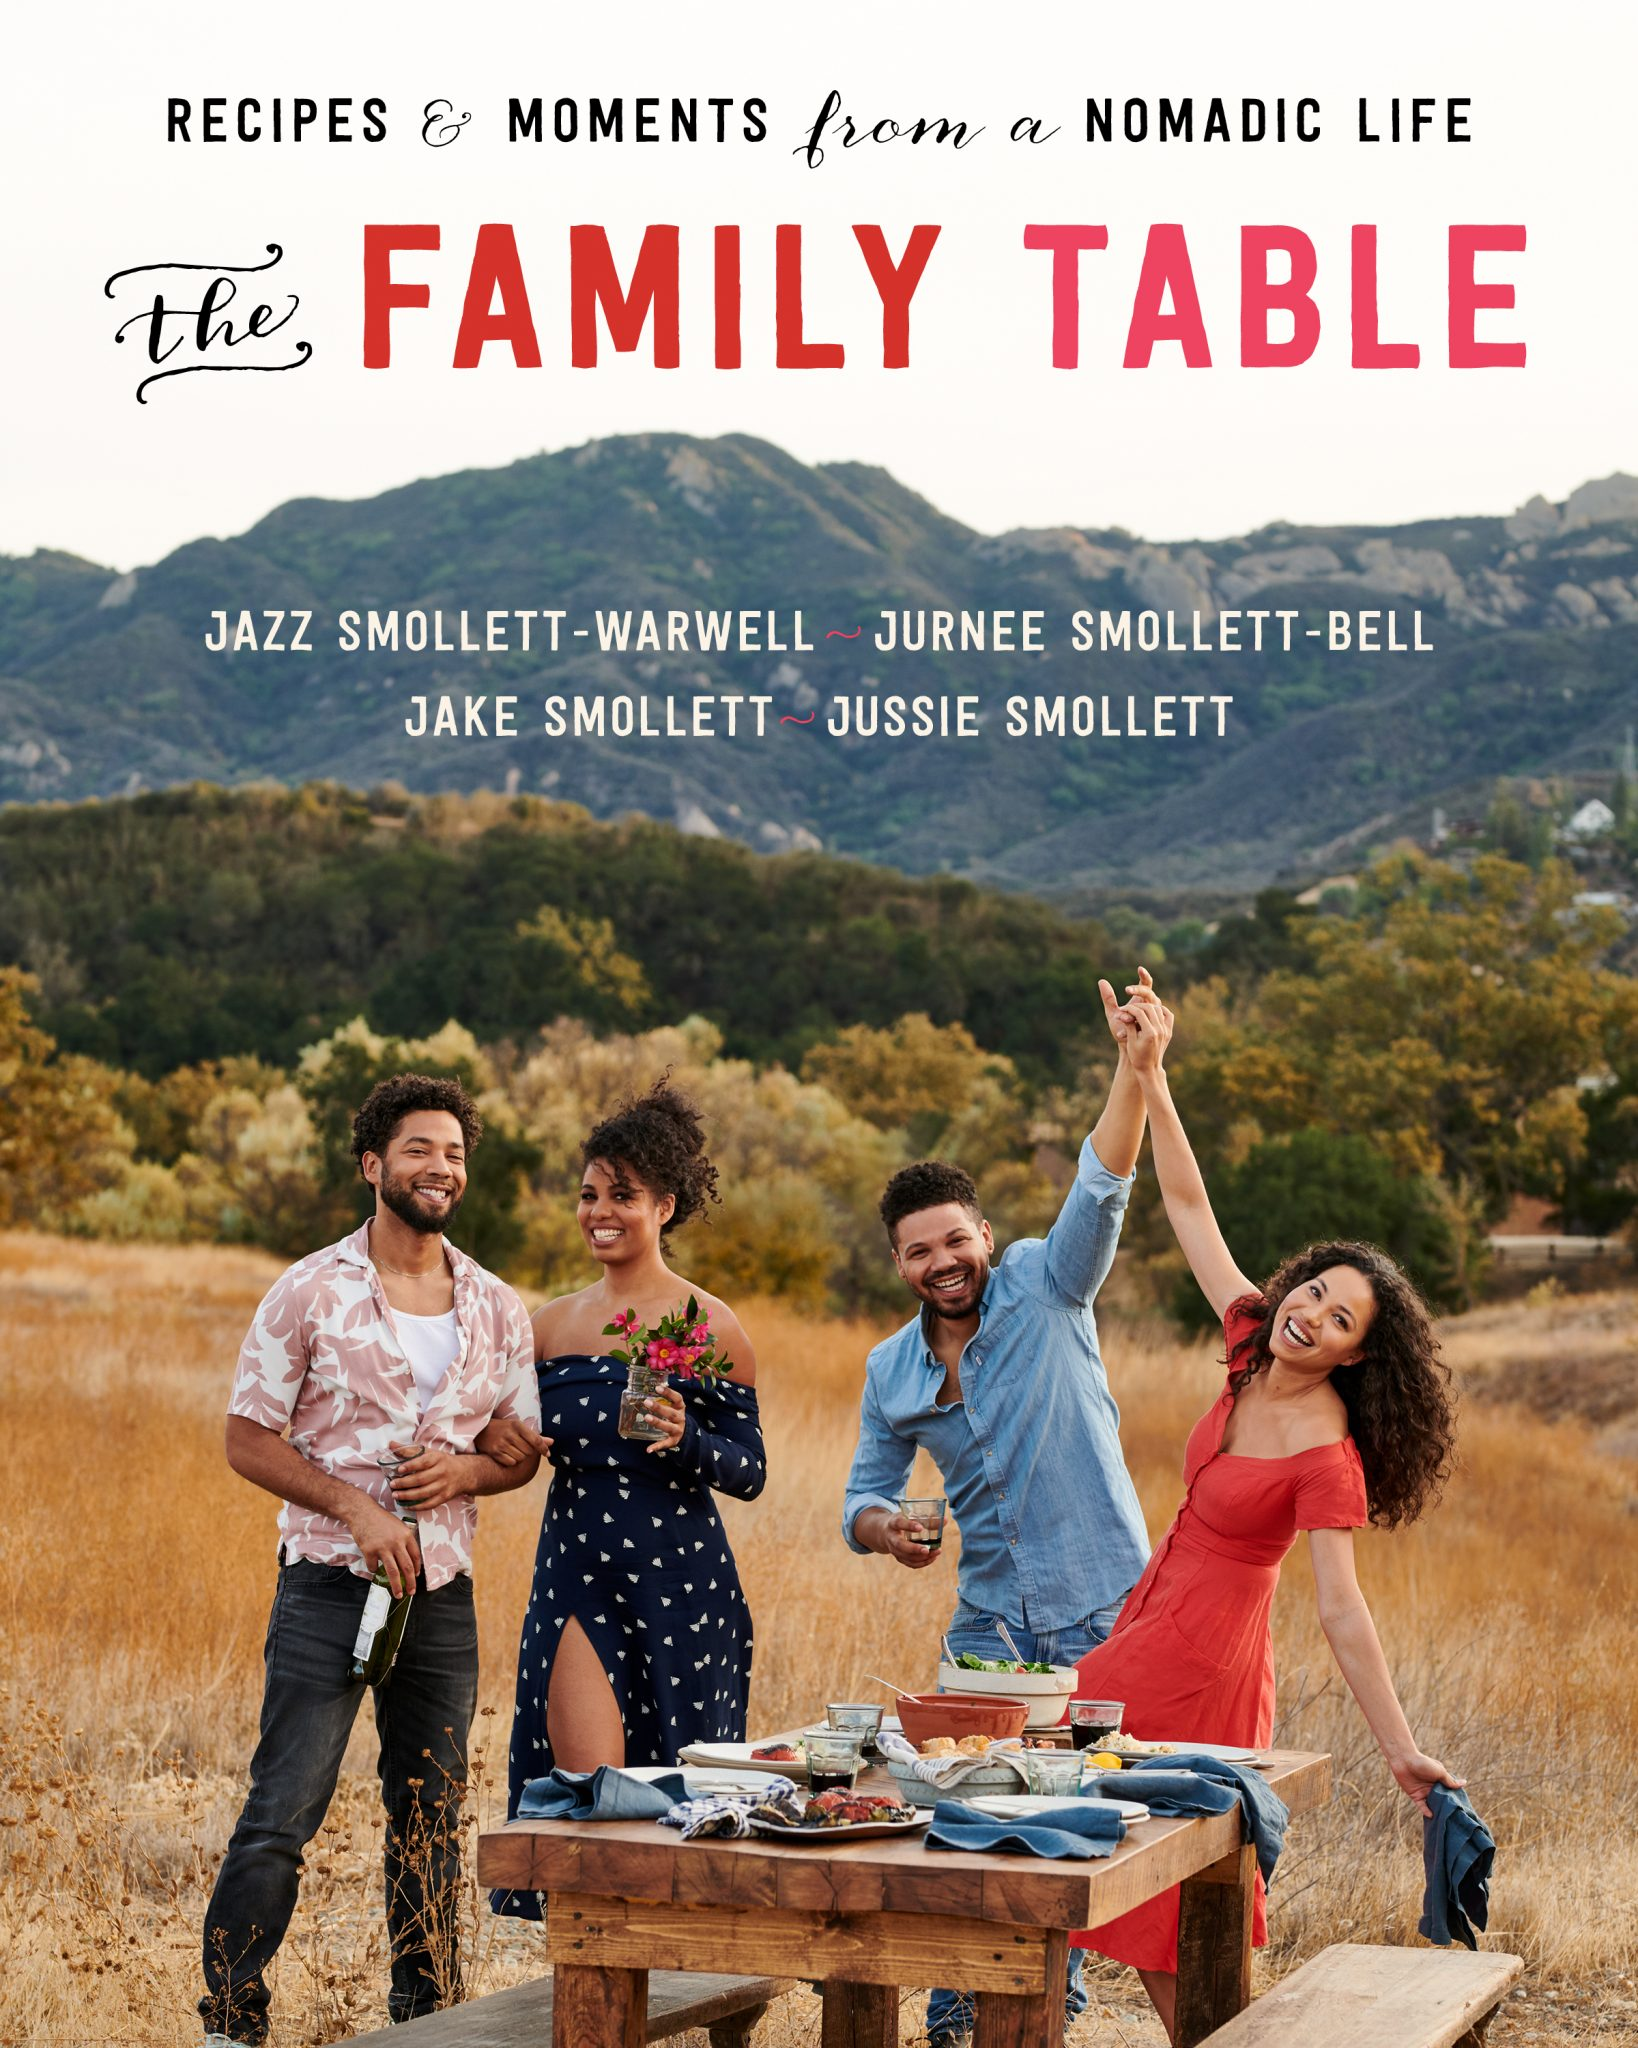 The Family Table Recipes And Moments From A Nomadic Life Cuisine